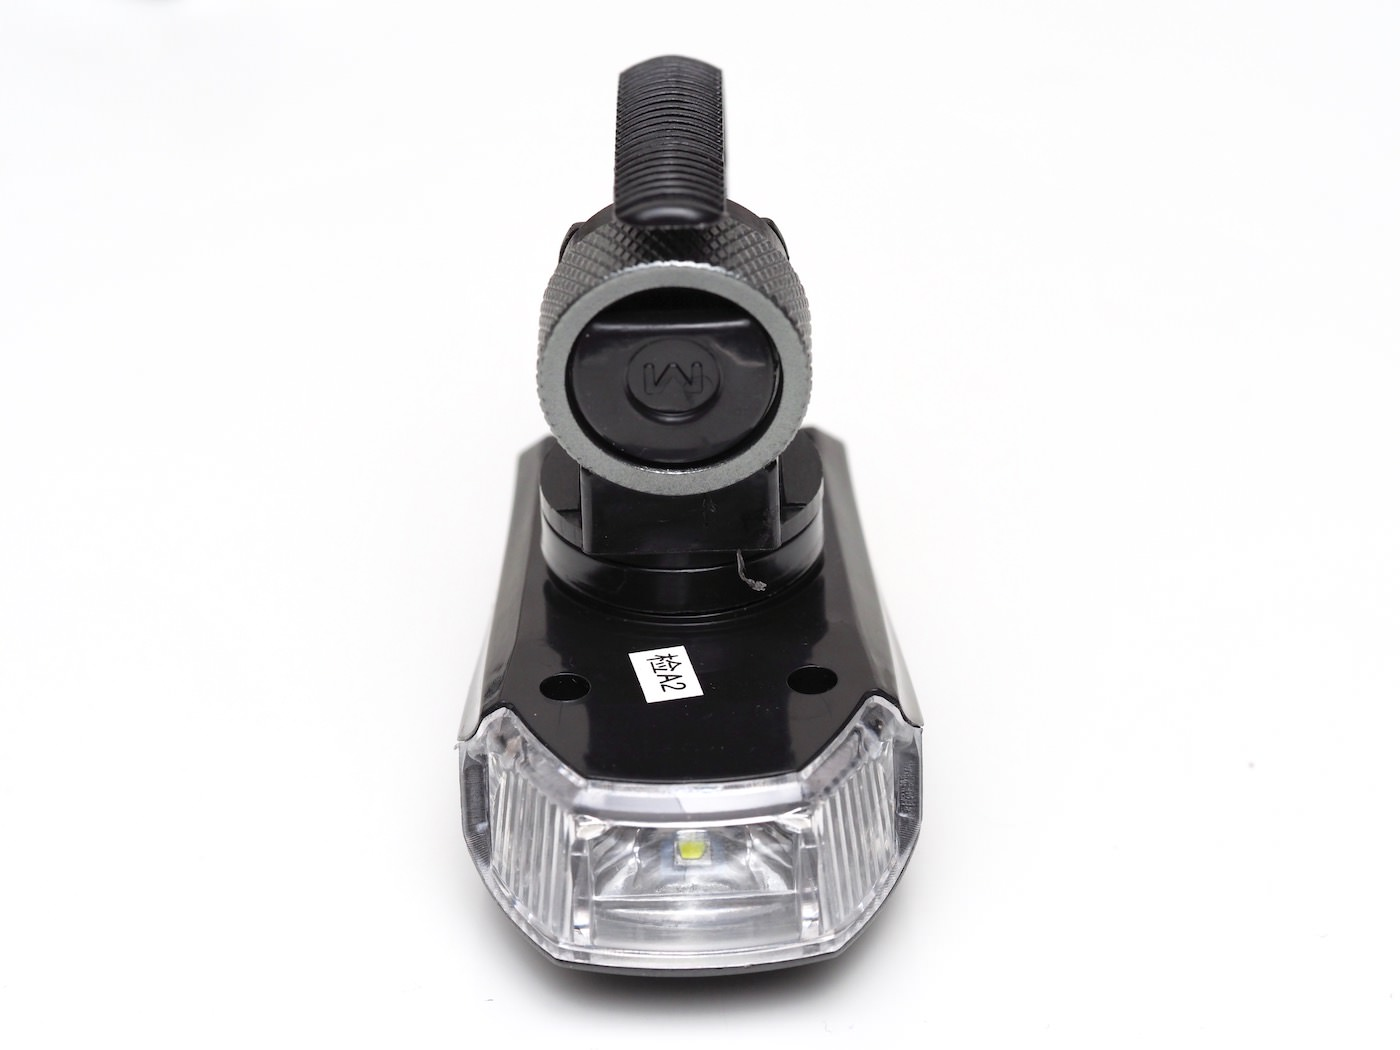 Cree xpg 2 cheap chinese led light with wide angle lens for bicycle 00019